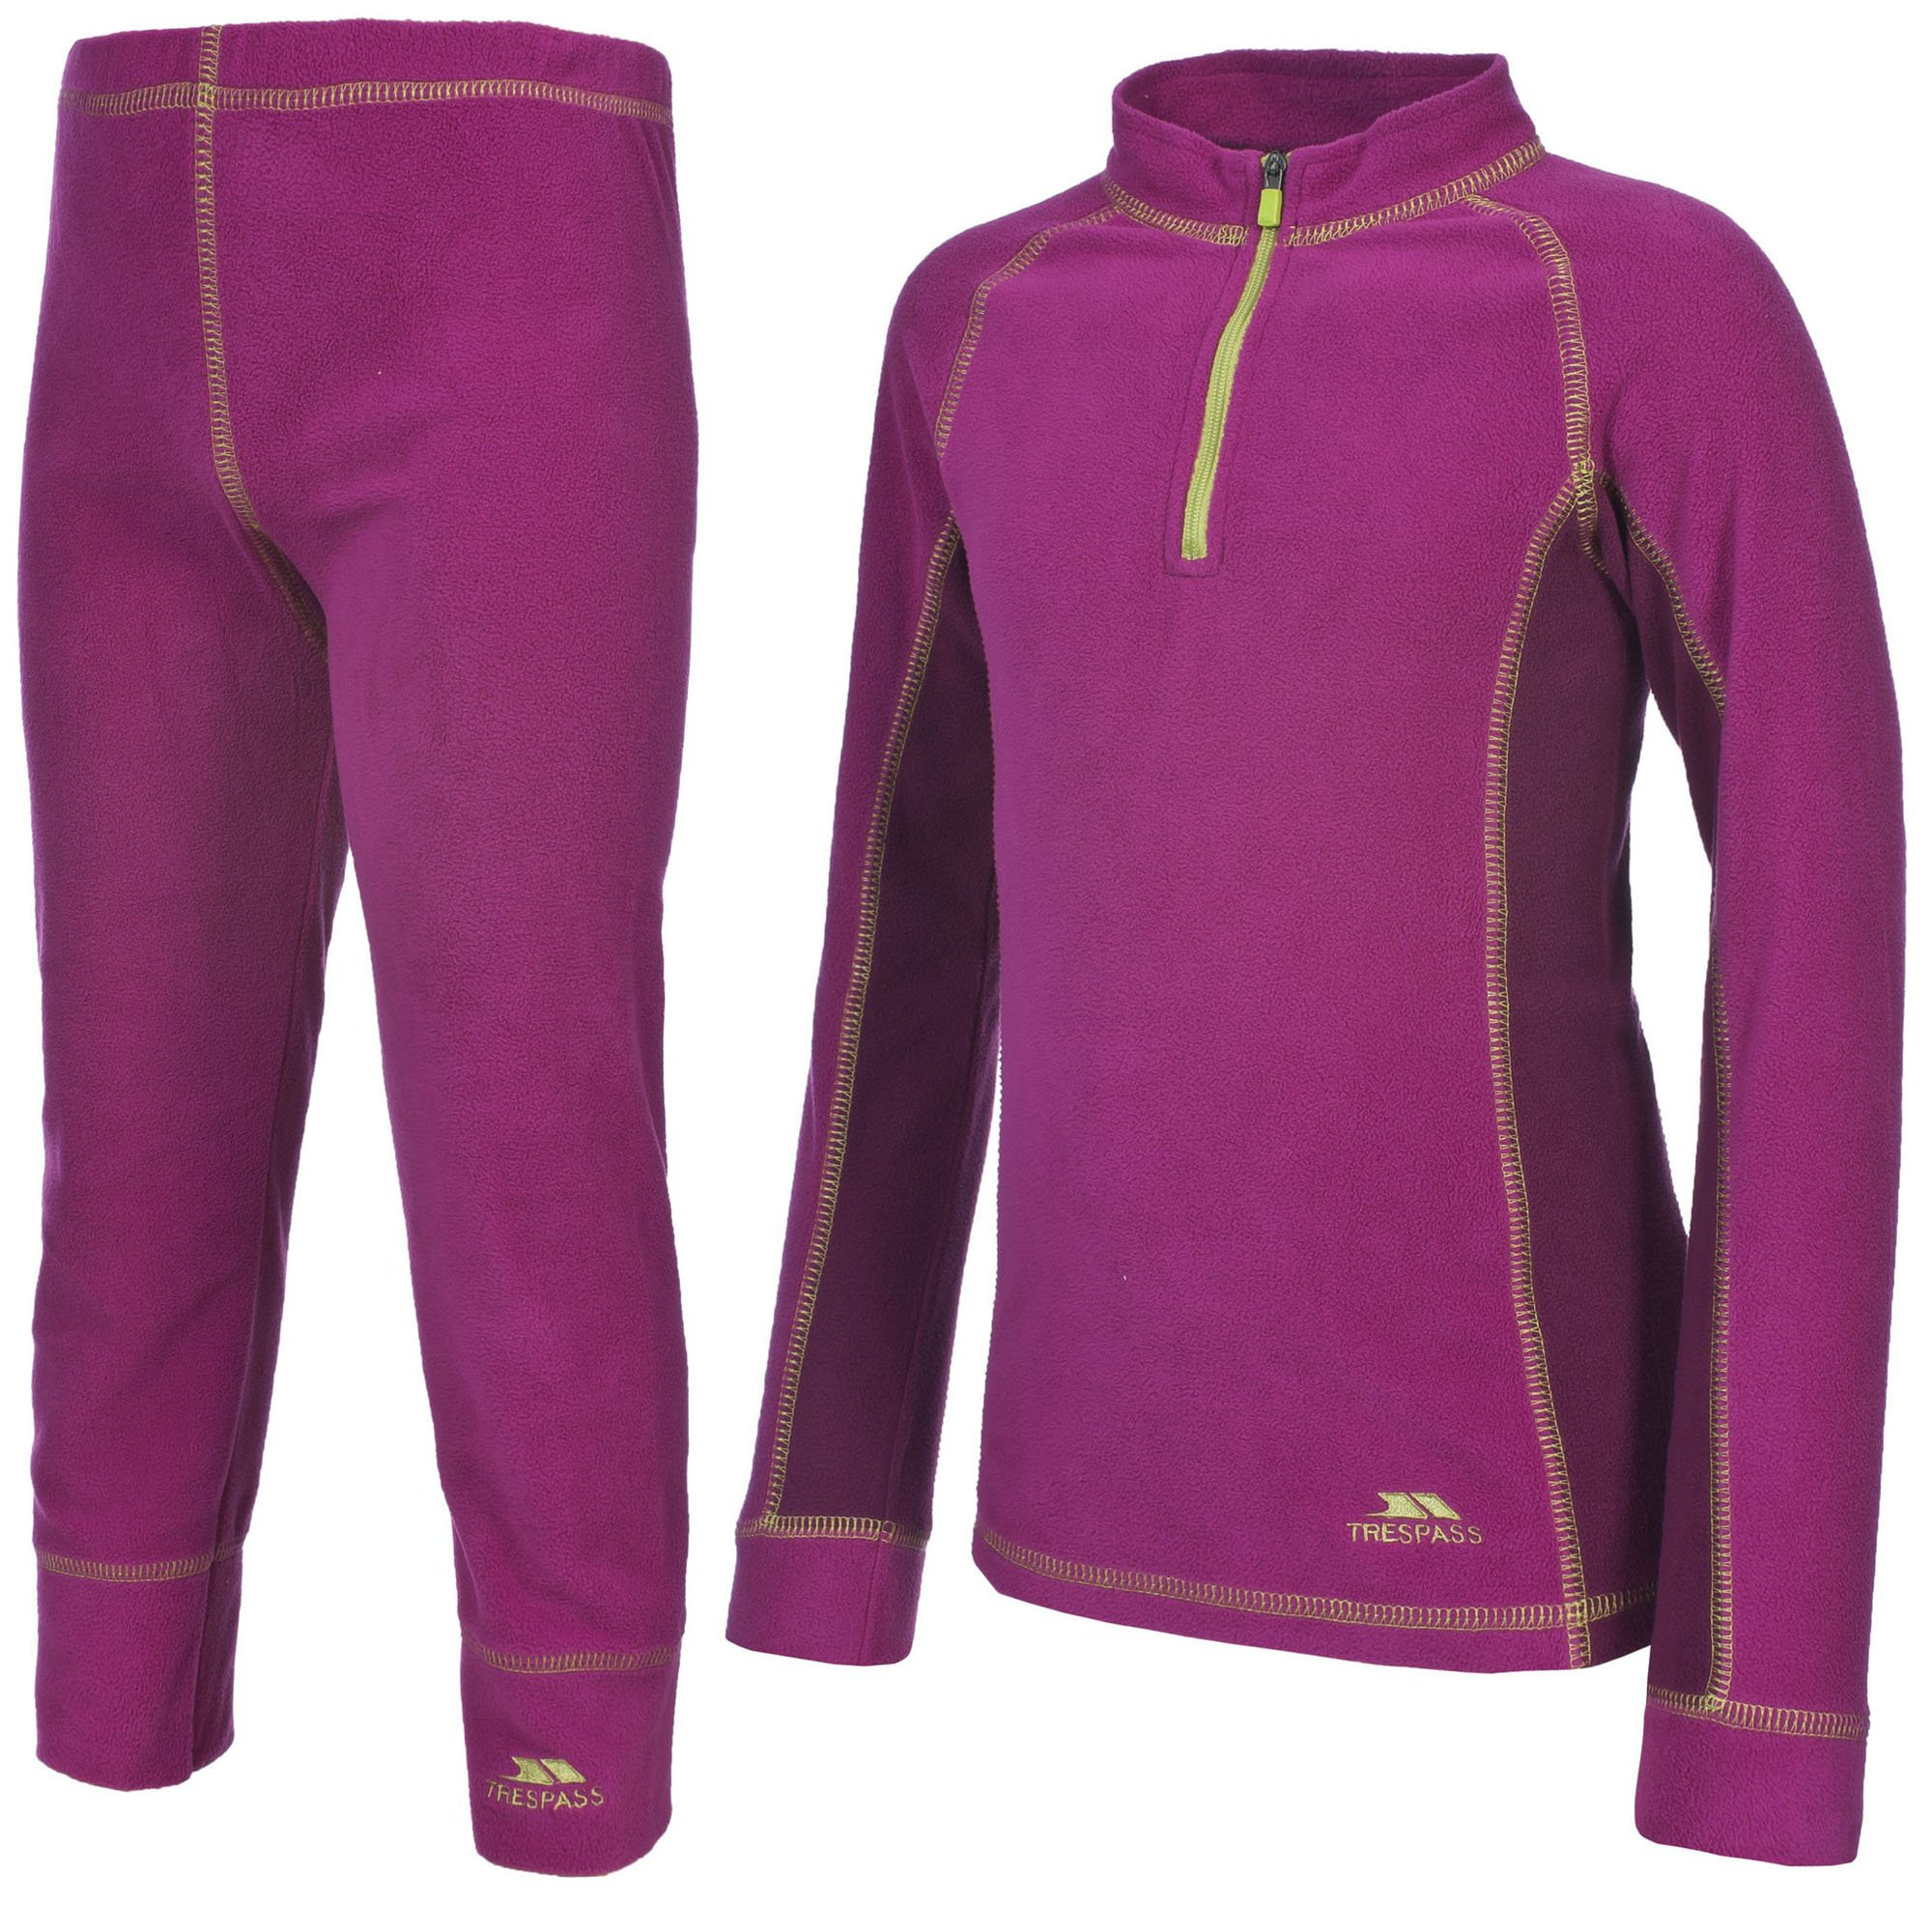 Trespass Childrens/Kids Bubbles Fleece Baselayer Set (5/6 Years) (Azalea)